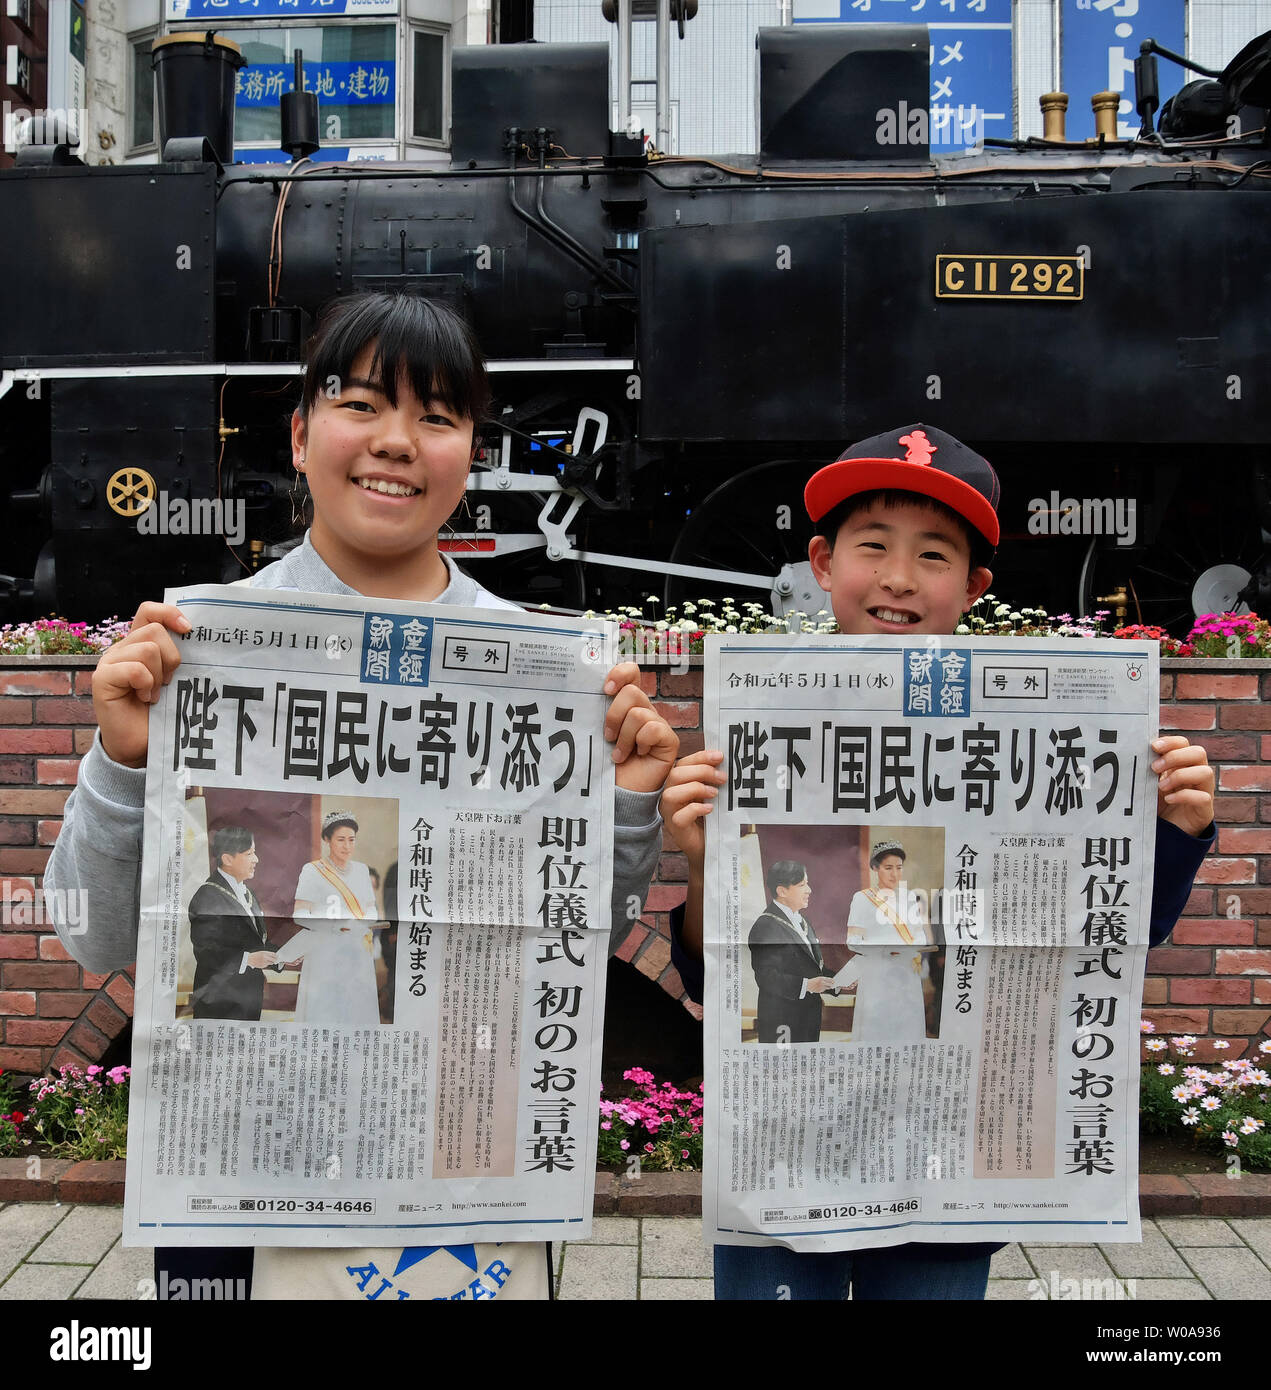 People receive the extra edition of newspaper reporting about the new emperor Naruhito ascends enthroned the Chrysanthemum Throne near the Shinbashi station in Tokyo, Japan on May 1, 2019.     Photo by Keizo Mori/UPI Stock Photo